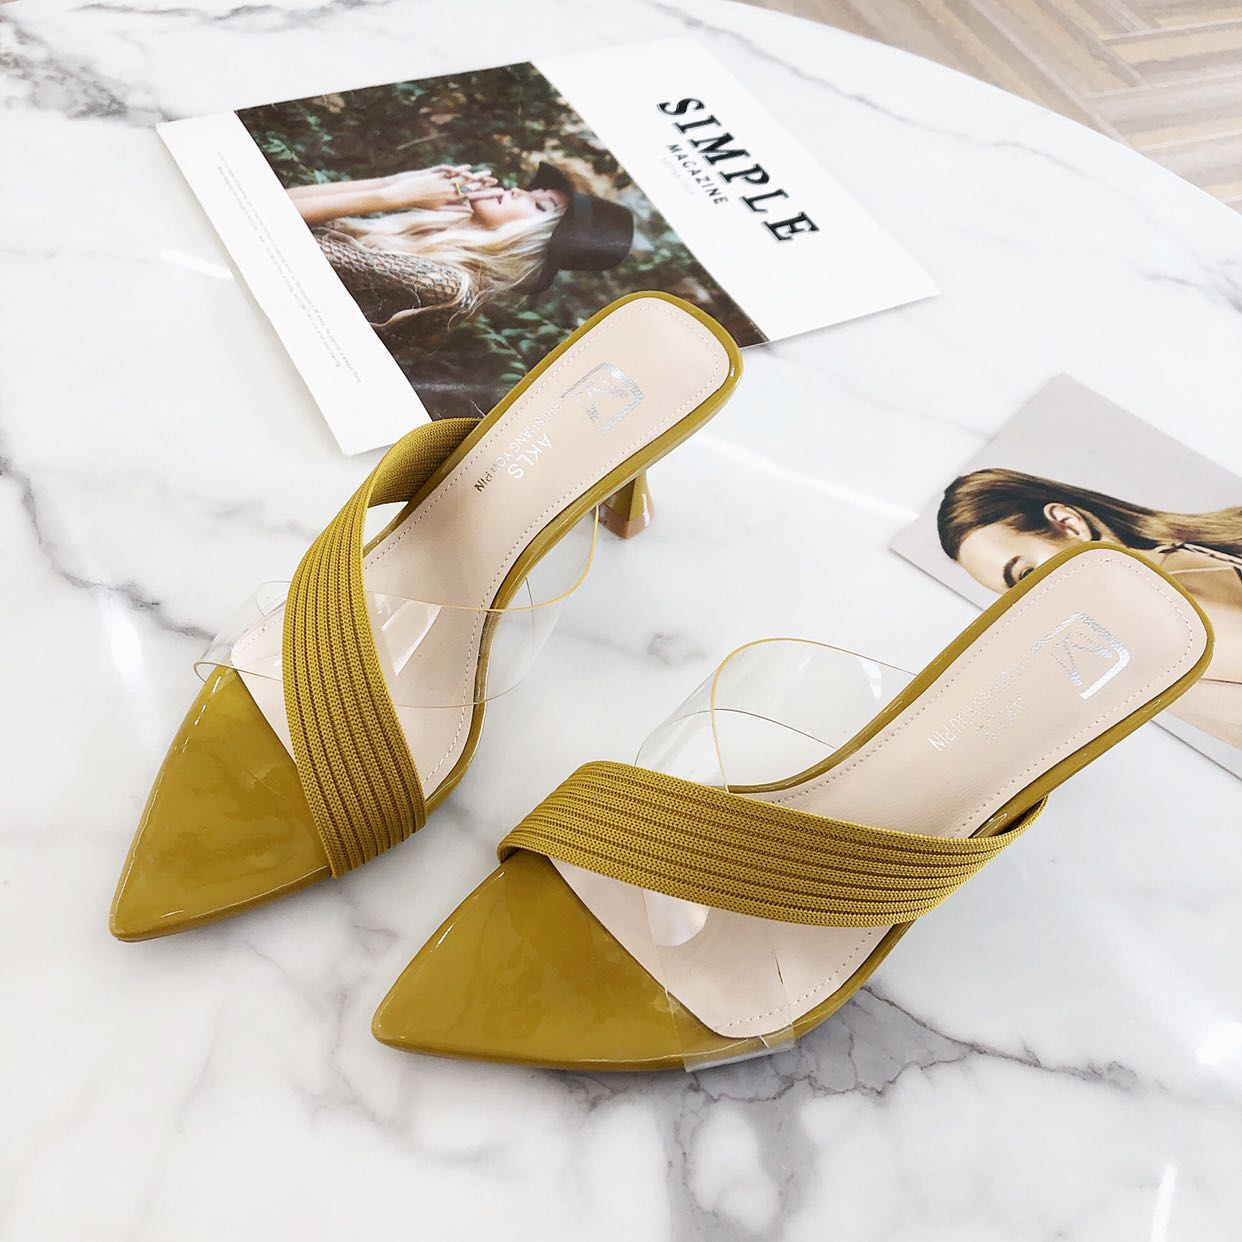 In summer 2020, akalisas pointed transparent rubber knitted surface is stitched to wear thin heeled sandals and medium heeled sandals for women